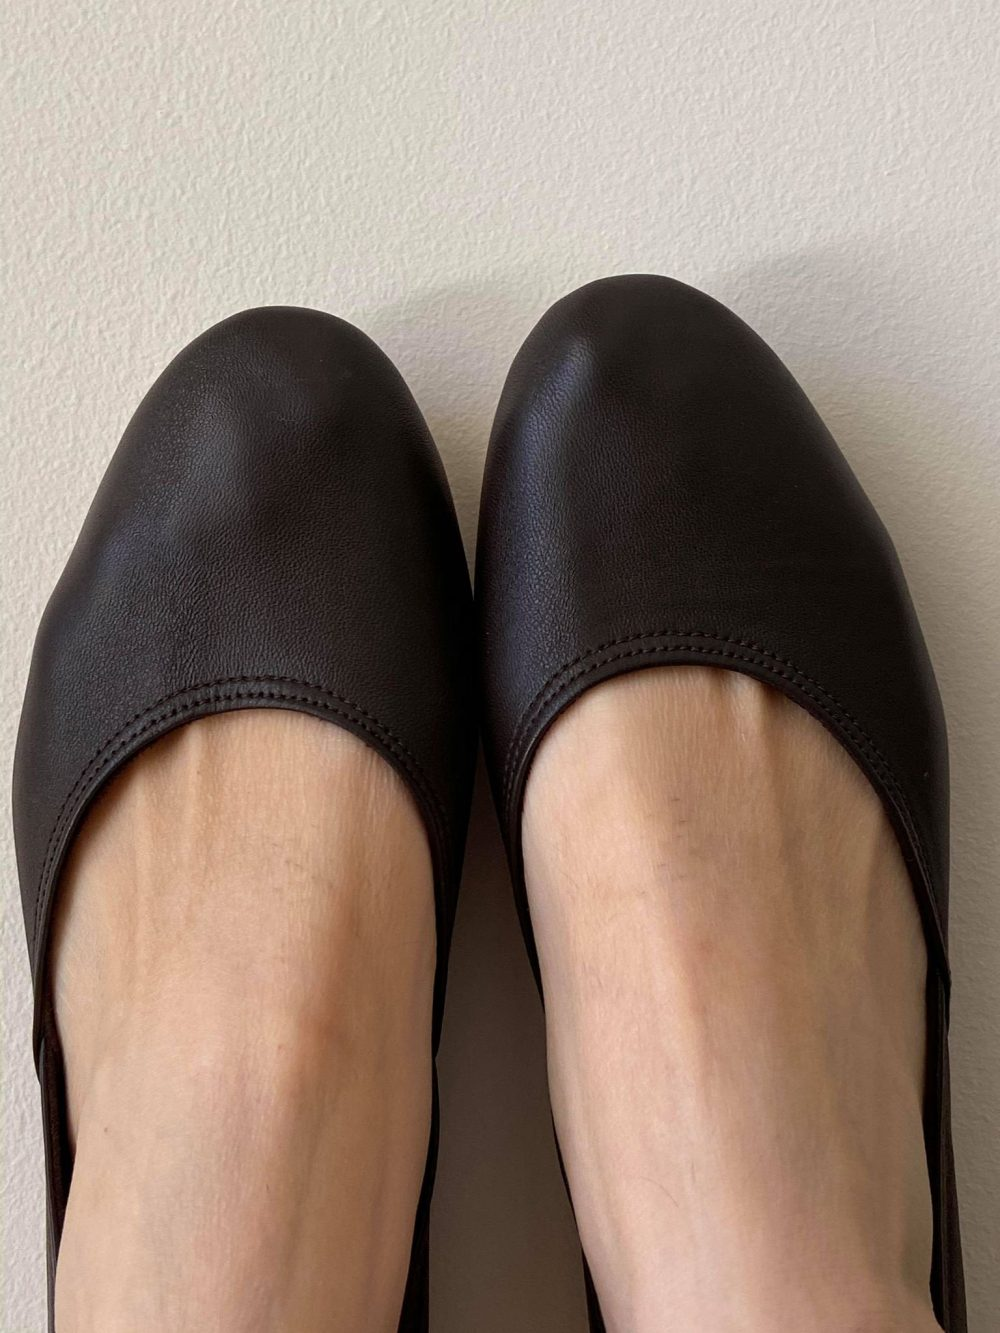 Maya. Dark Brown Leather Ballet Flats/ Women's Shoes/ Bridal Flats. Available in Different Colours & Sizes